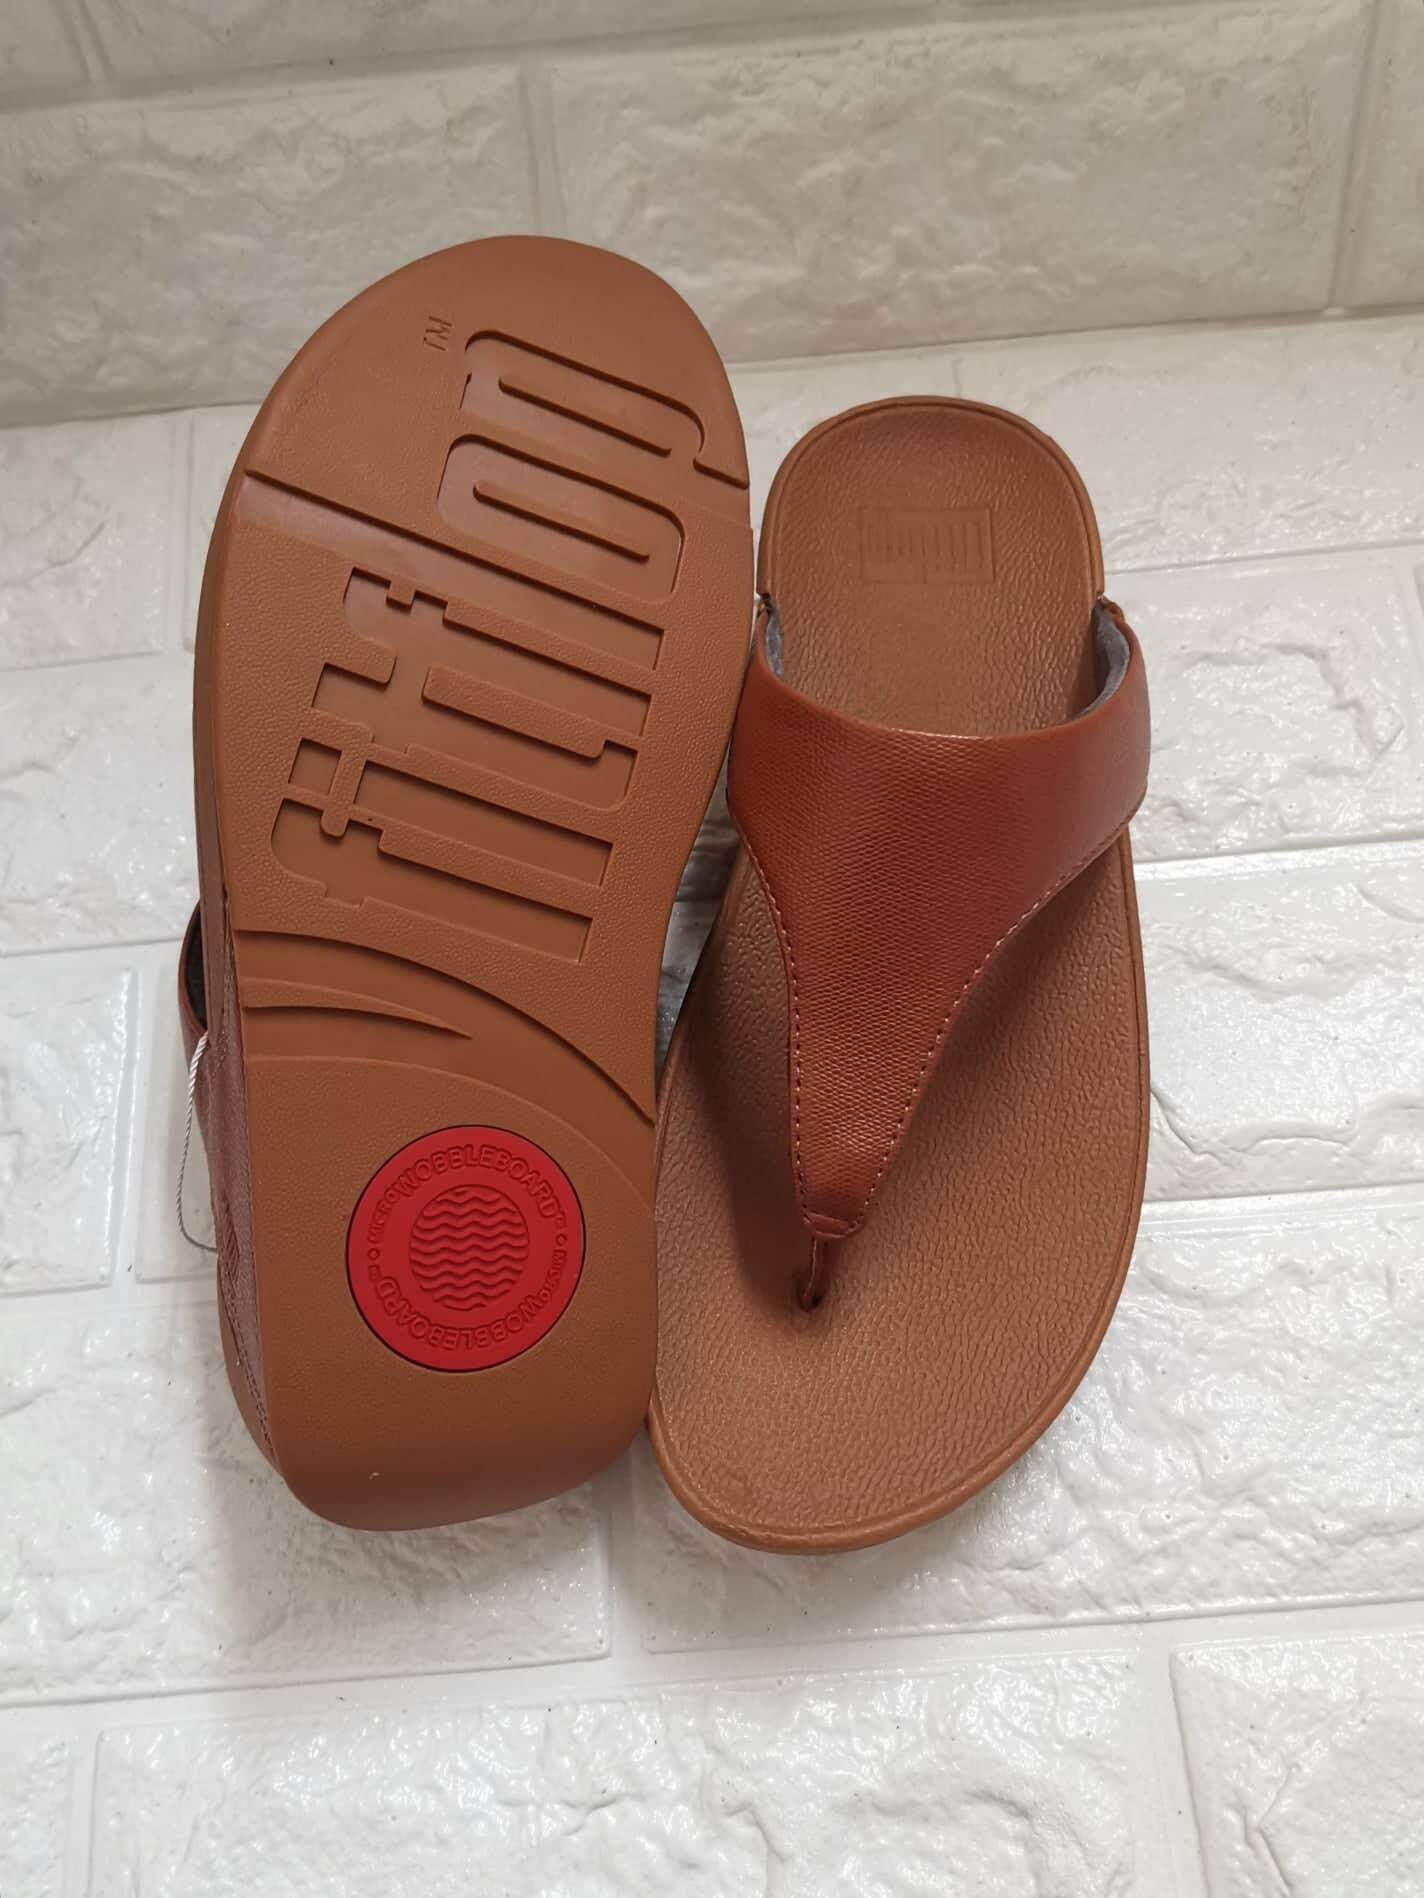 f1a2a0fd0 Popular Fitflop Sandals for the Best Prices in Malaysia